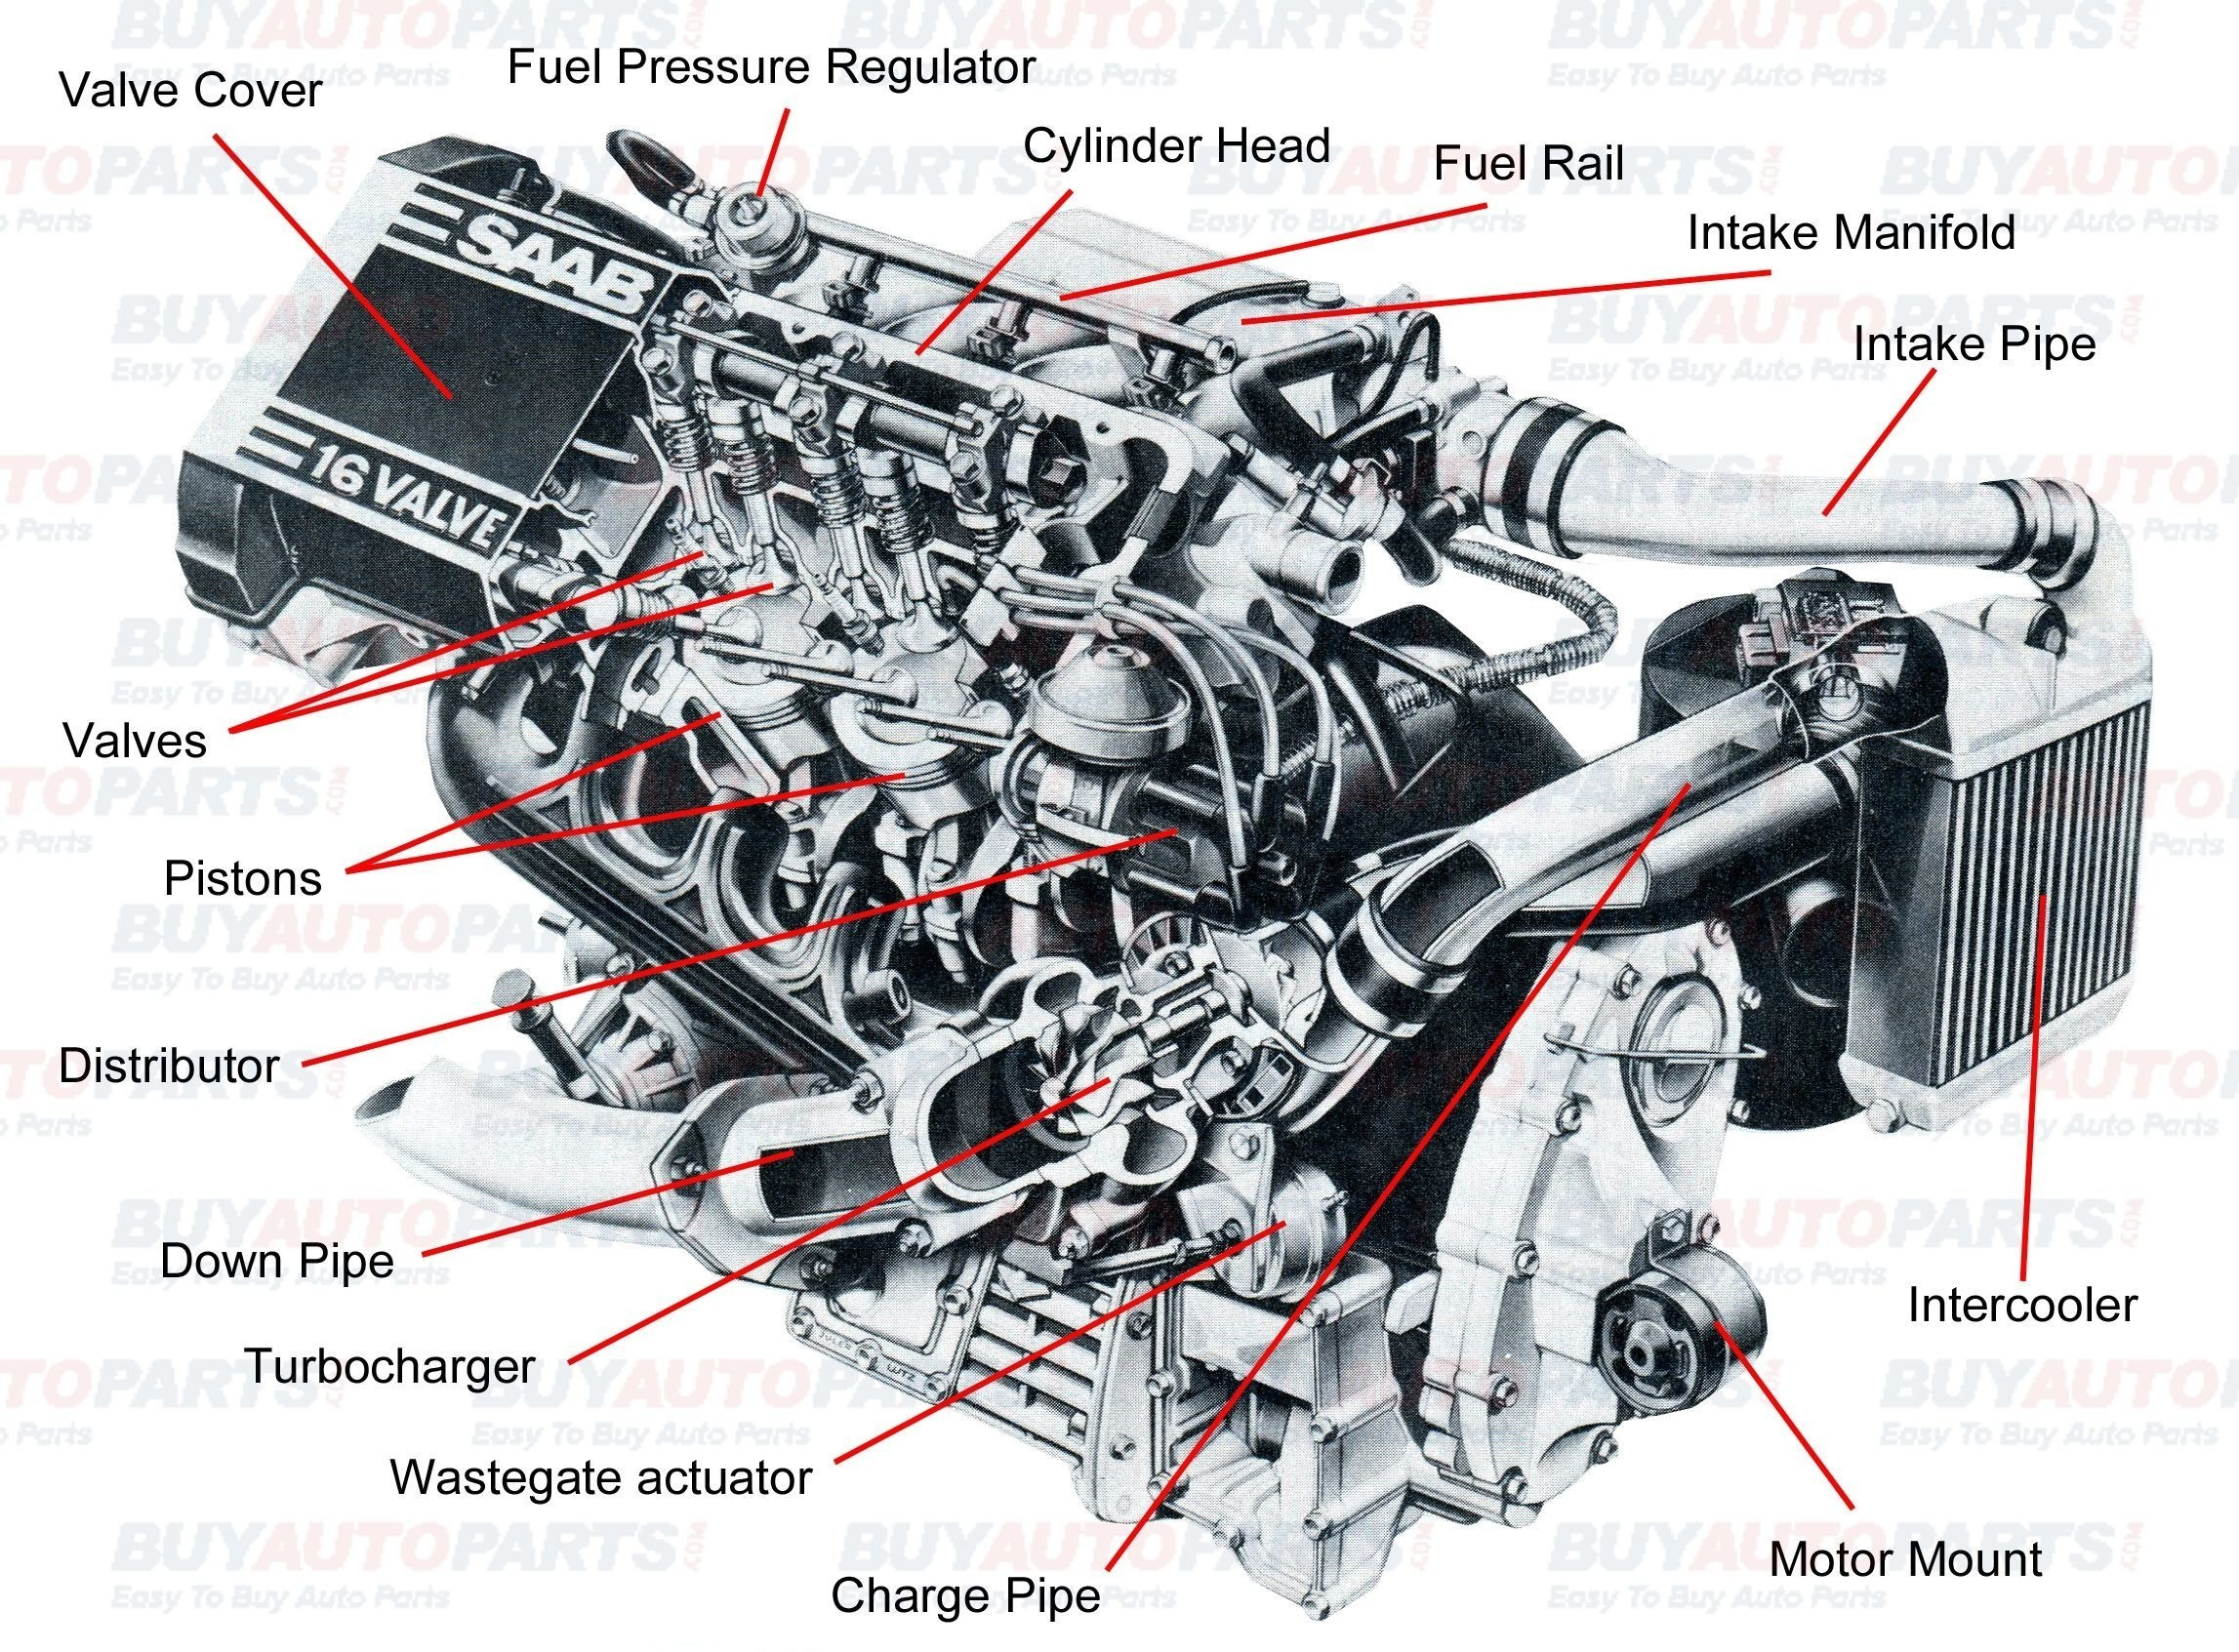 Under the Car Hood Diagram Parts Engine Diagram Diagram Parts Under A Car Diagram Car Engine Of Under the Car Hood Diagram Diagram Brake System Car Car Brake Diagram Rear Brake Drum